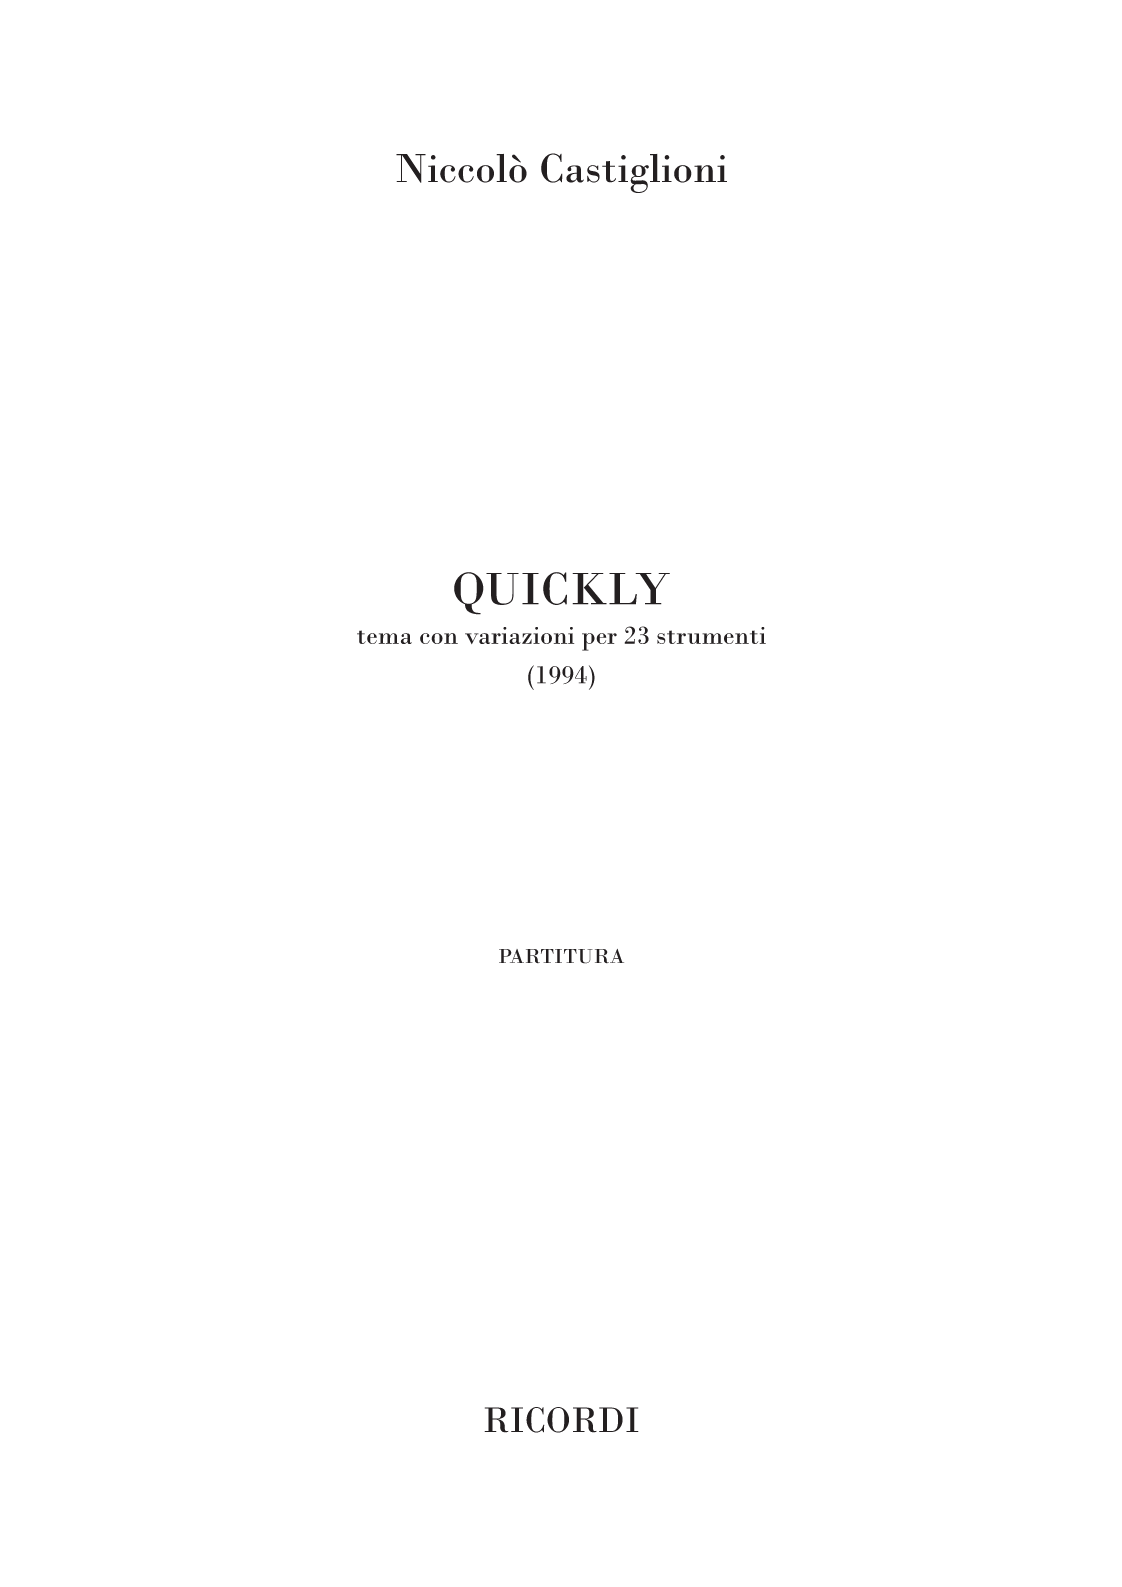 Quickly (flipbook)